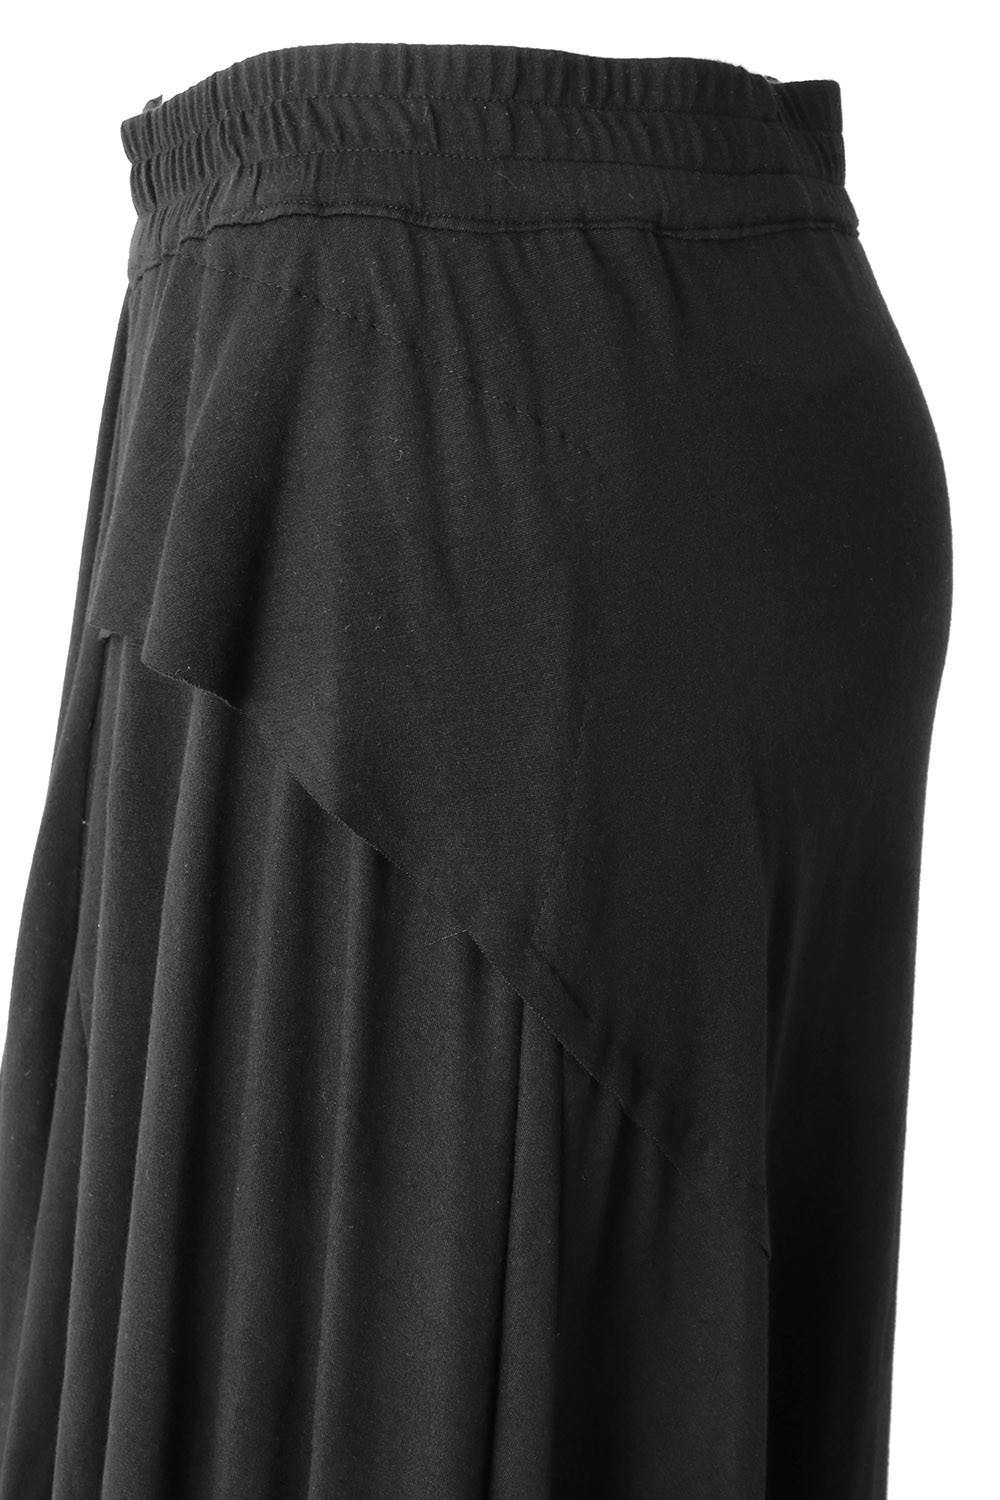 Layered Flare Skirt- AL-1382